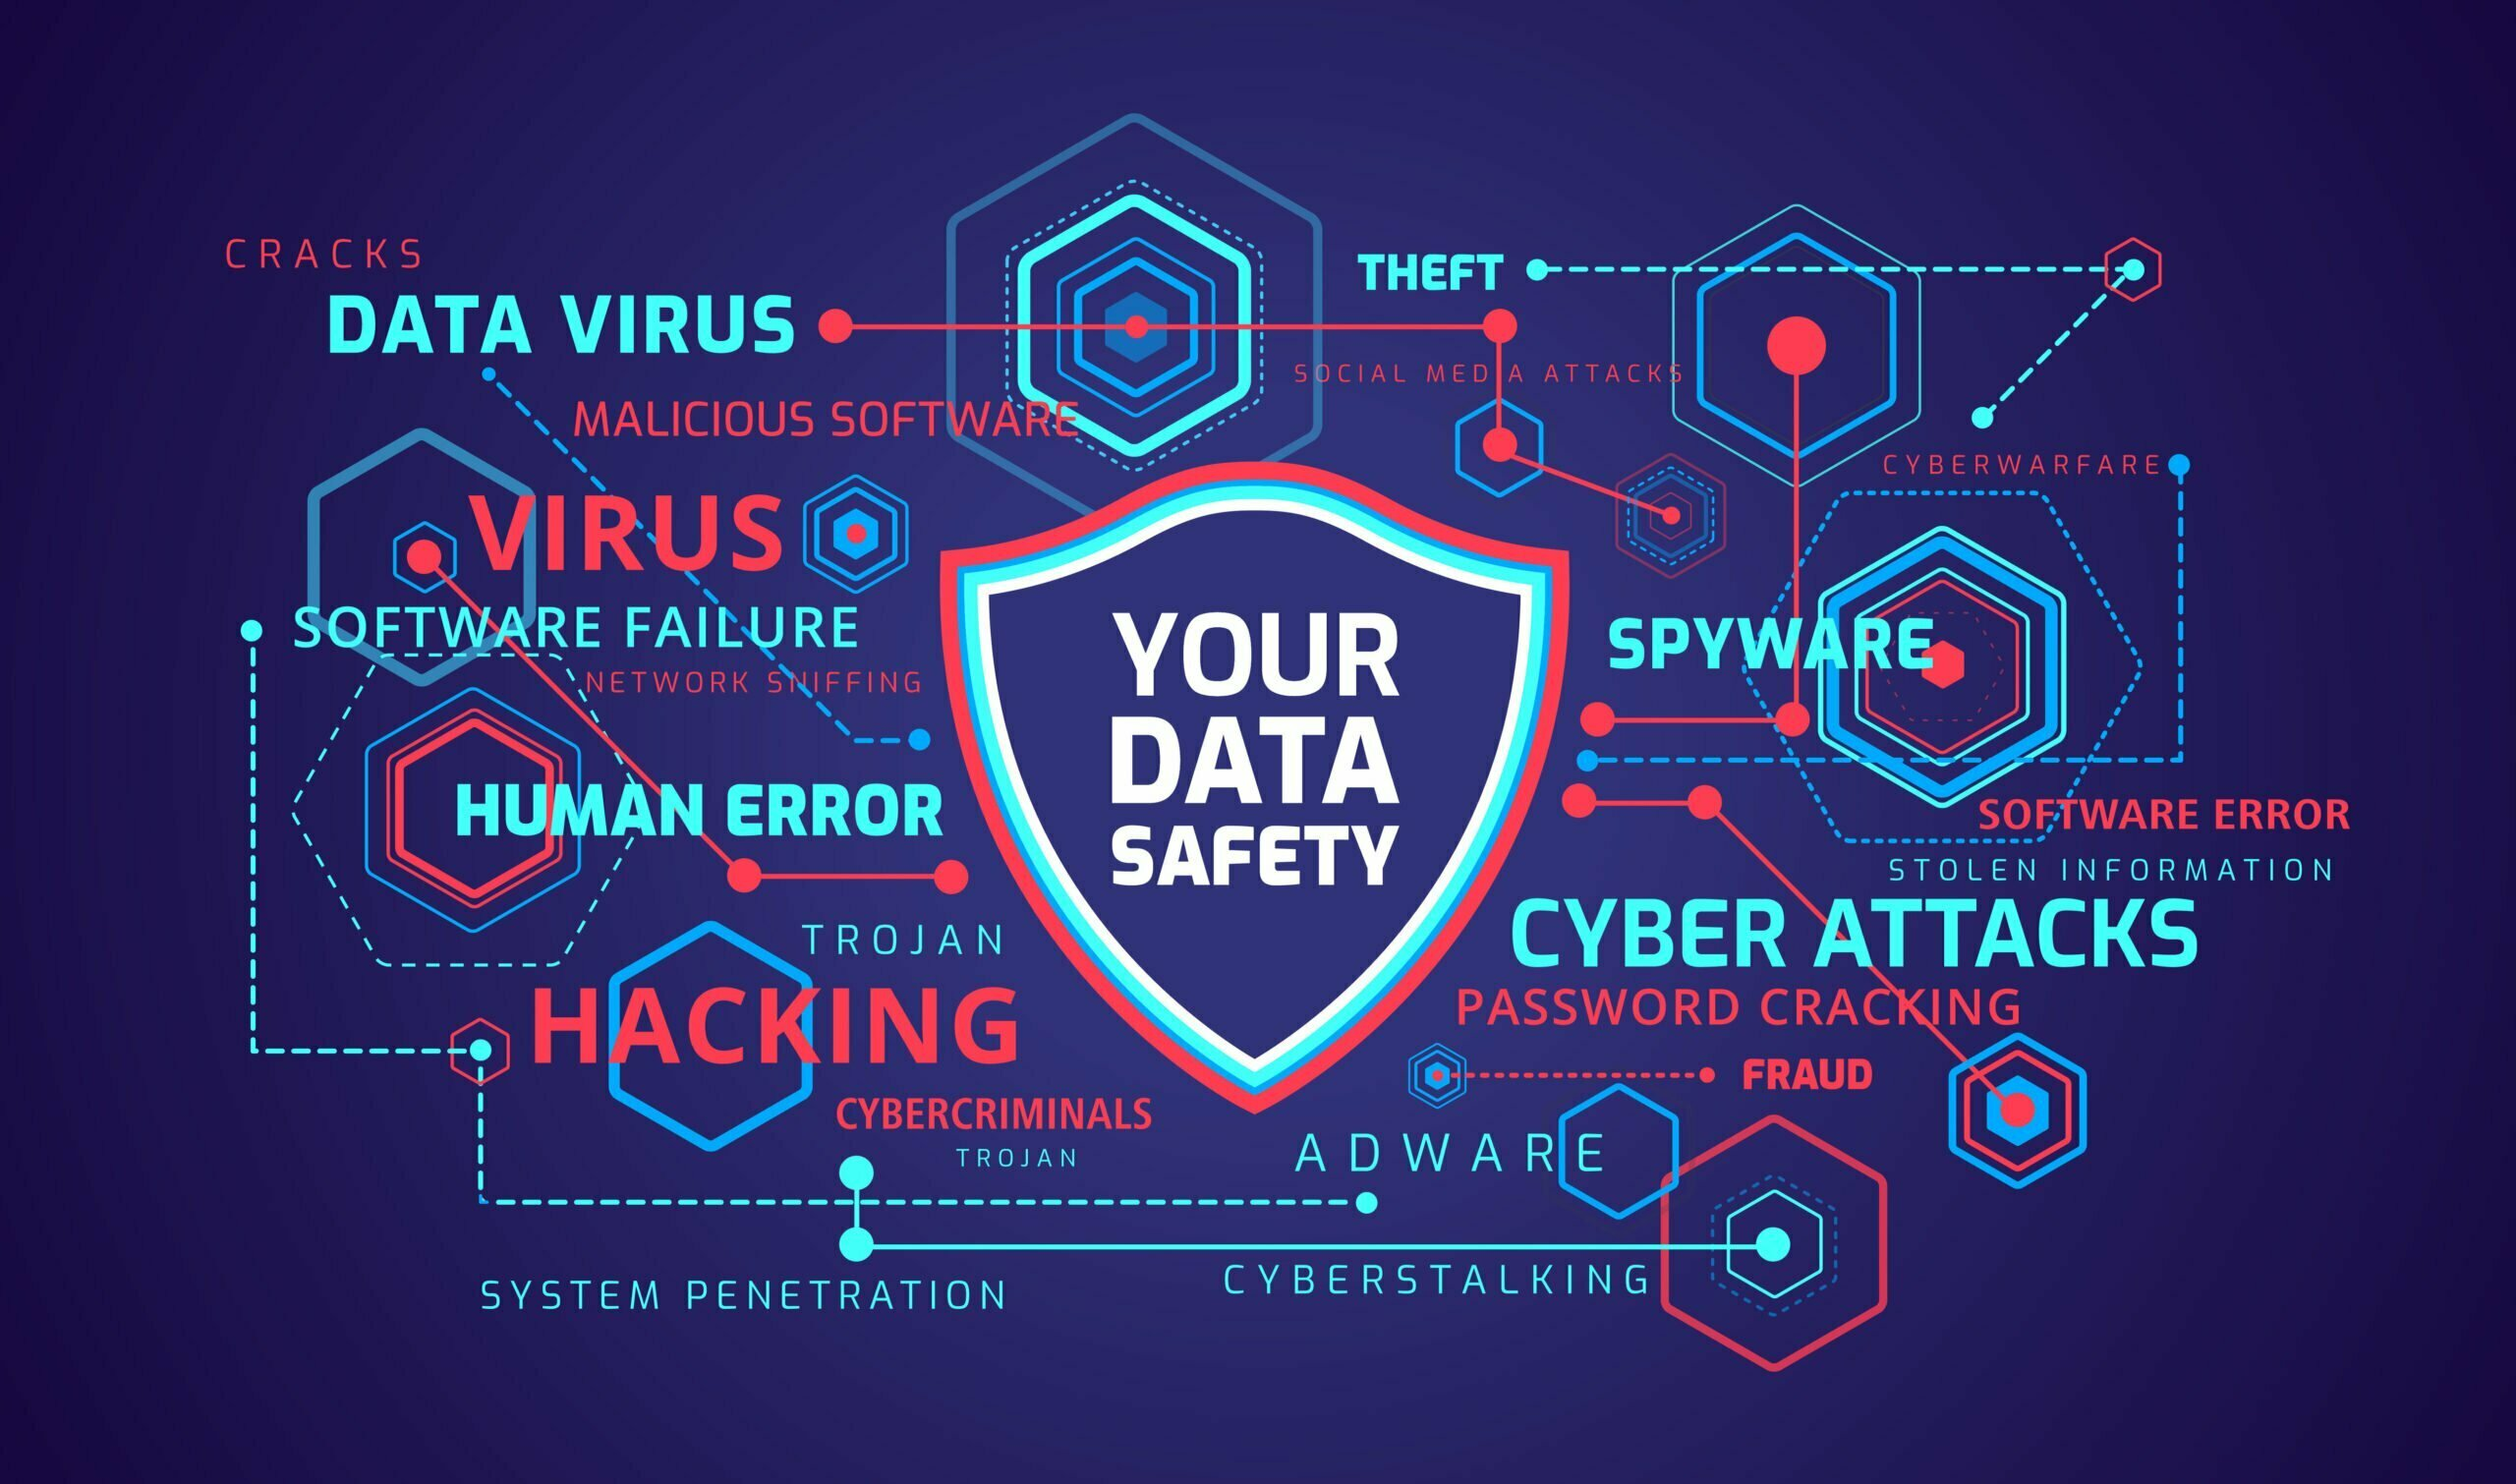 Six steps to take before you look for Cyber Insurance